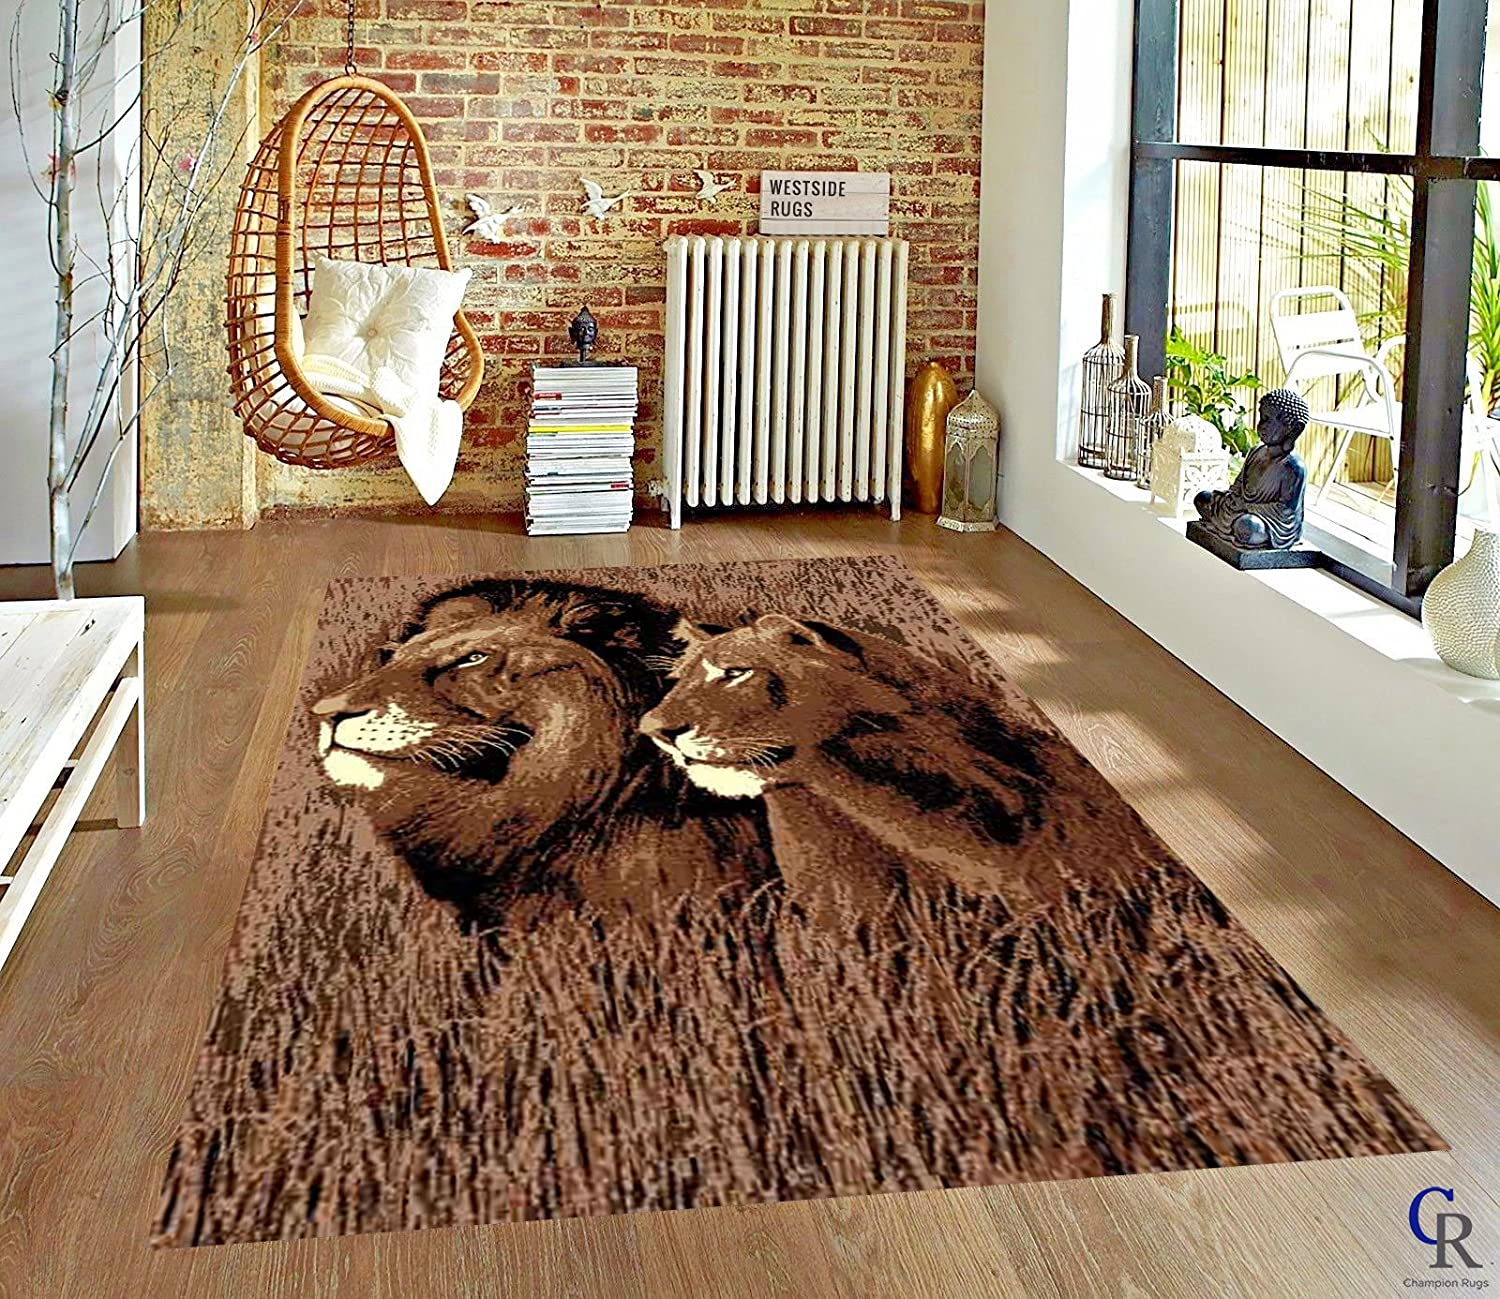 Amazon Com Champion Rugs Safari Lion And Lioness Modern Animal Print African Theme Area Rug 5 3 X 7 5 Kitchen Dining